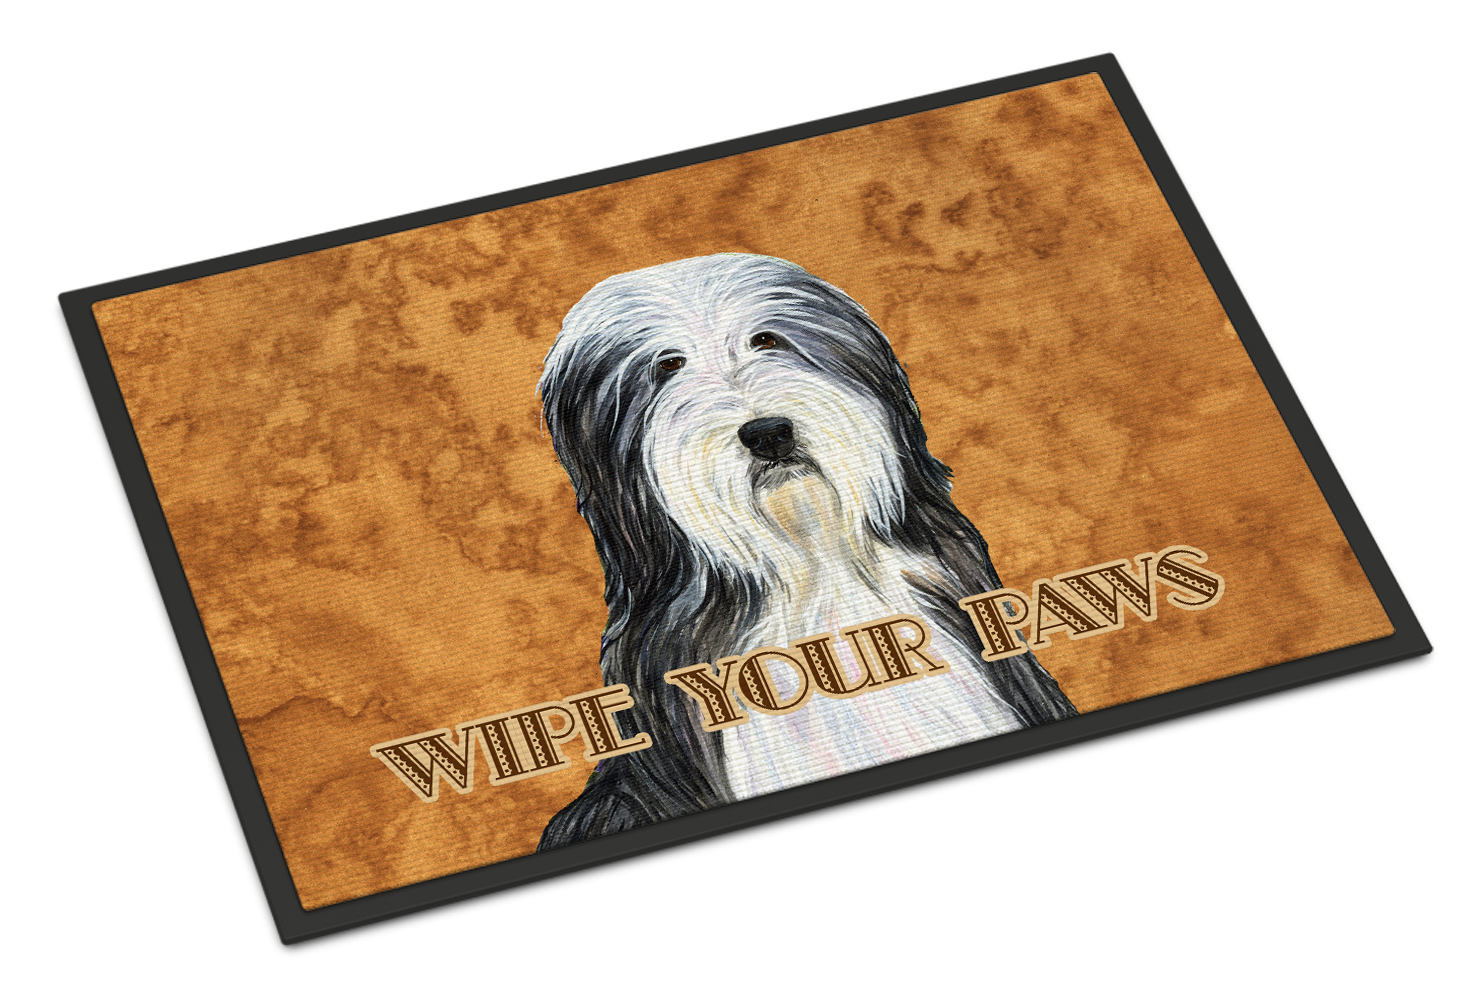 Bearded Collie Wipe your Paws Doormat by Caroline's Treasures